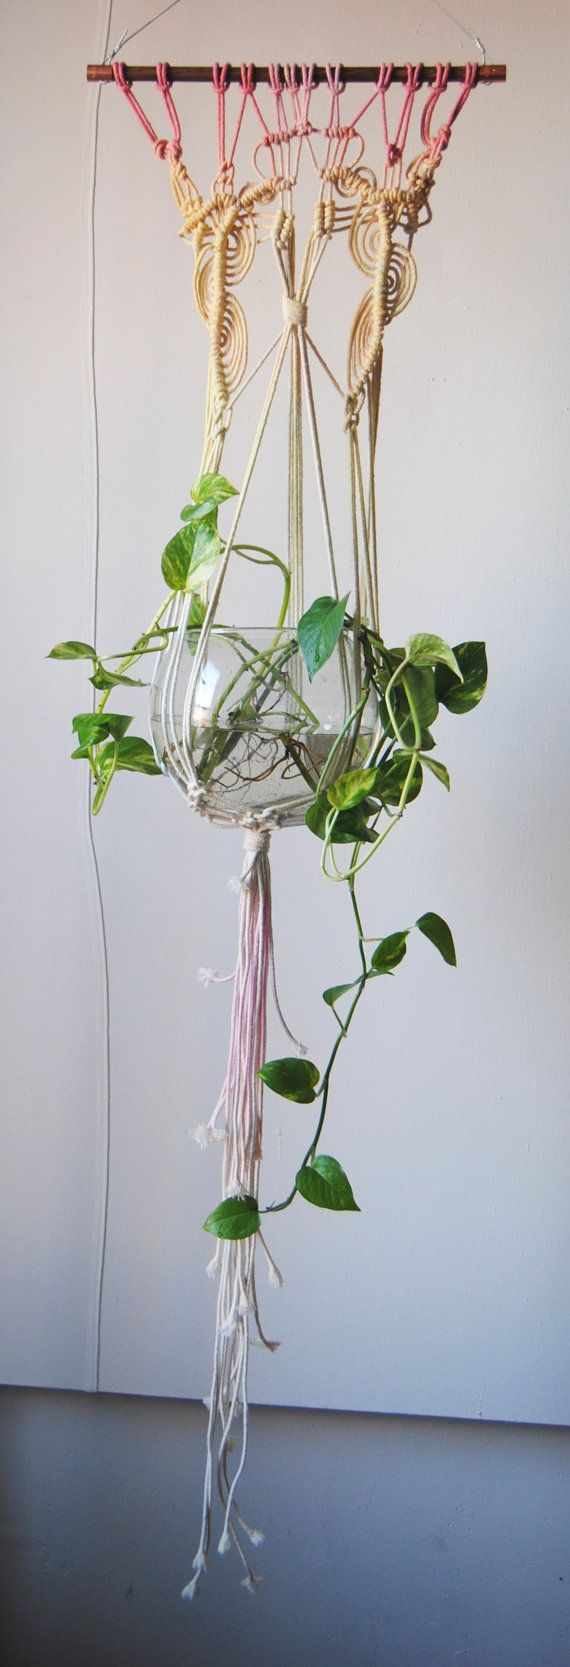 ... Plant Hangers, Magic Gardens, Plants Holders, Slow, Plants Hangers